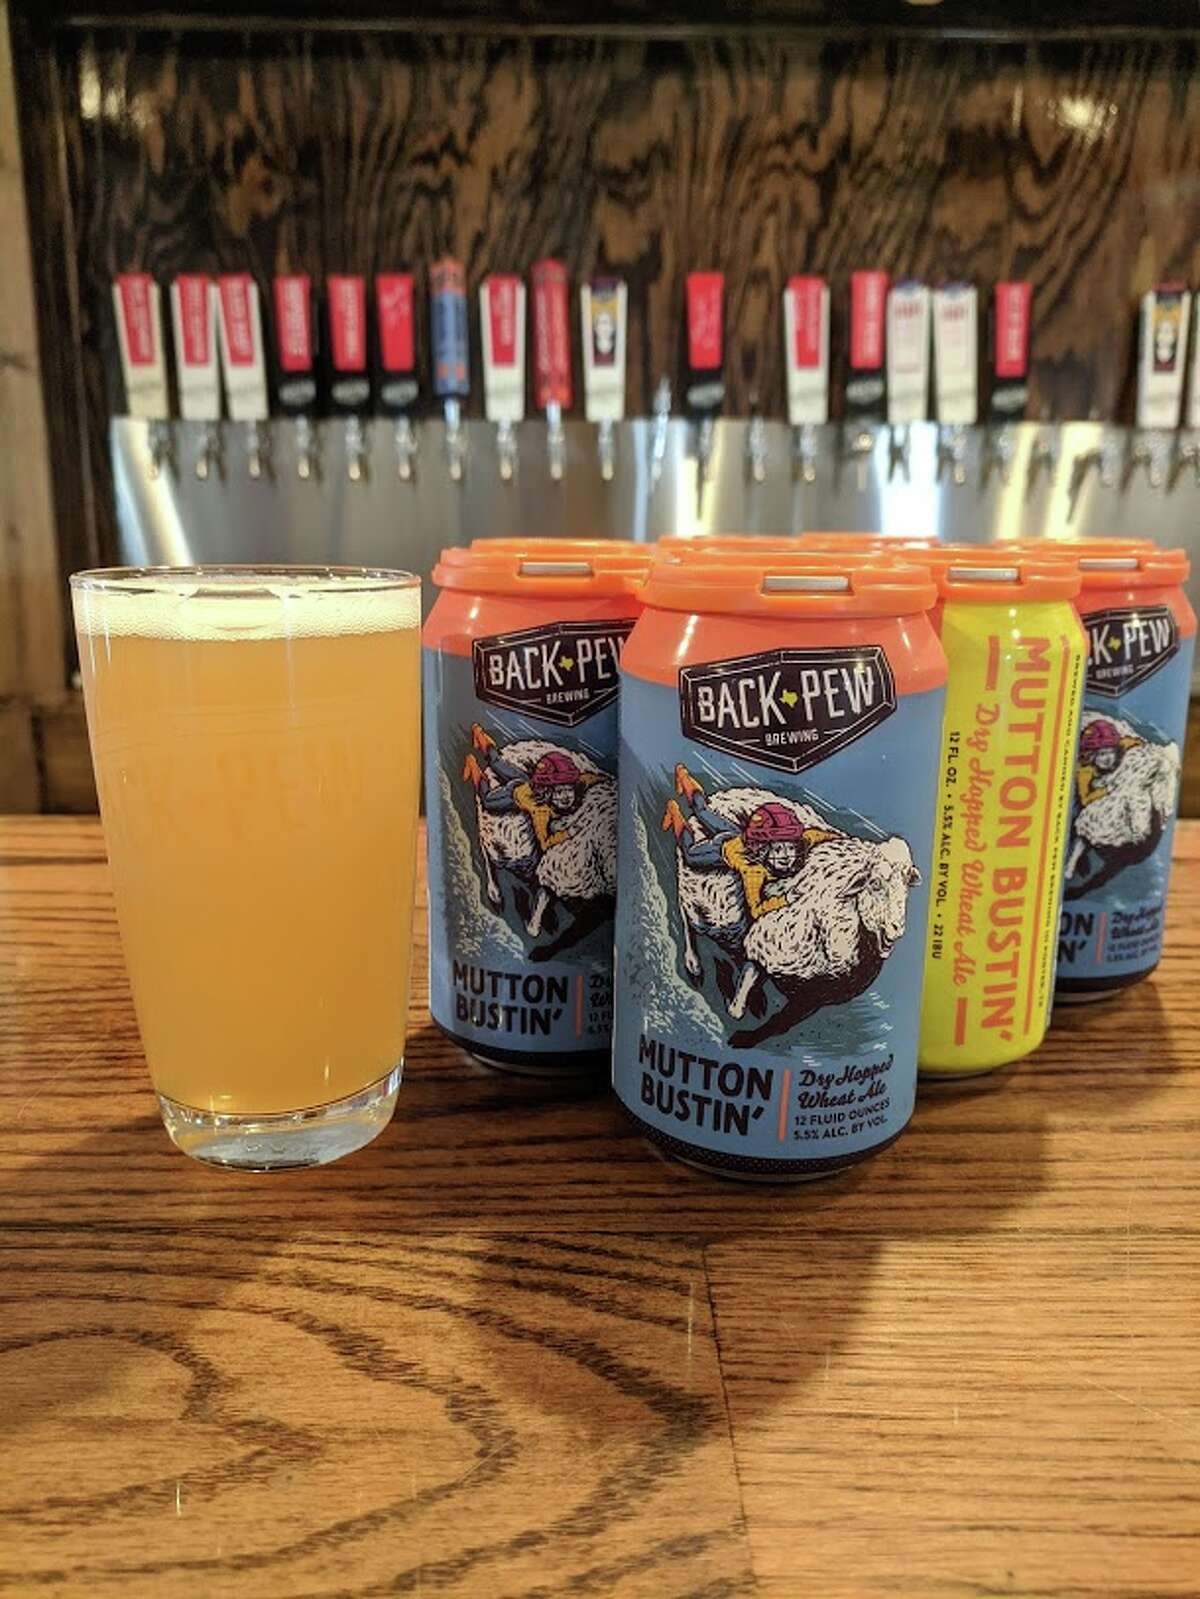 Back Pew Brewing in Porter, TX canned Mutton Bustin' beer just in time for the Houston Rodeo.